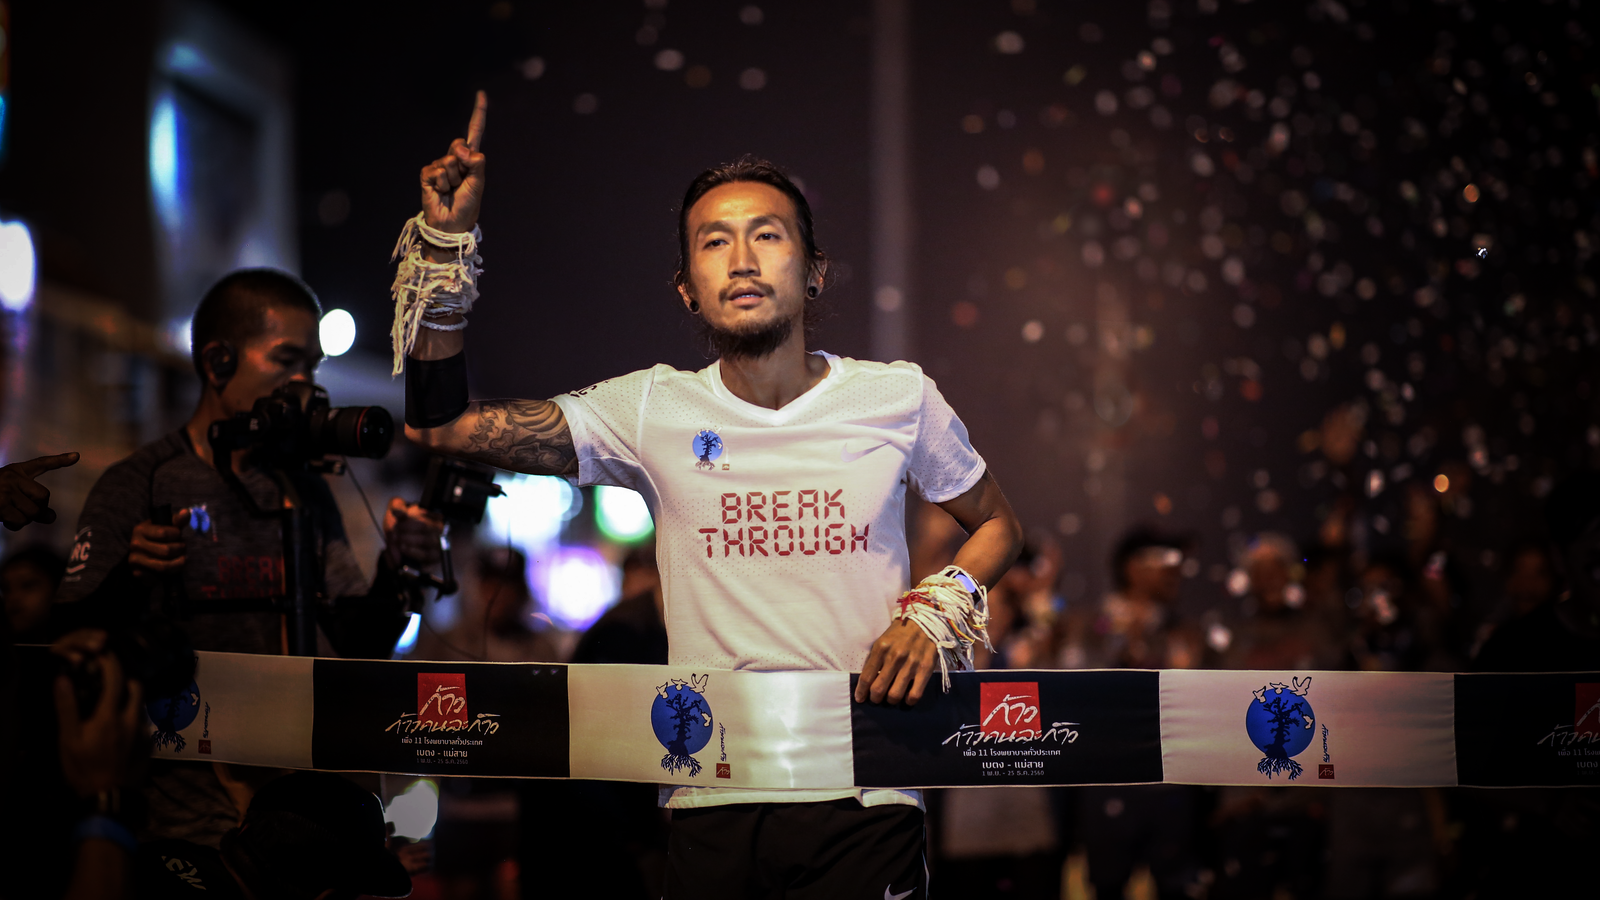 THAI ROCK STAR TOON COMPLETES HIS EPIC 55-DAY RUN 8